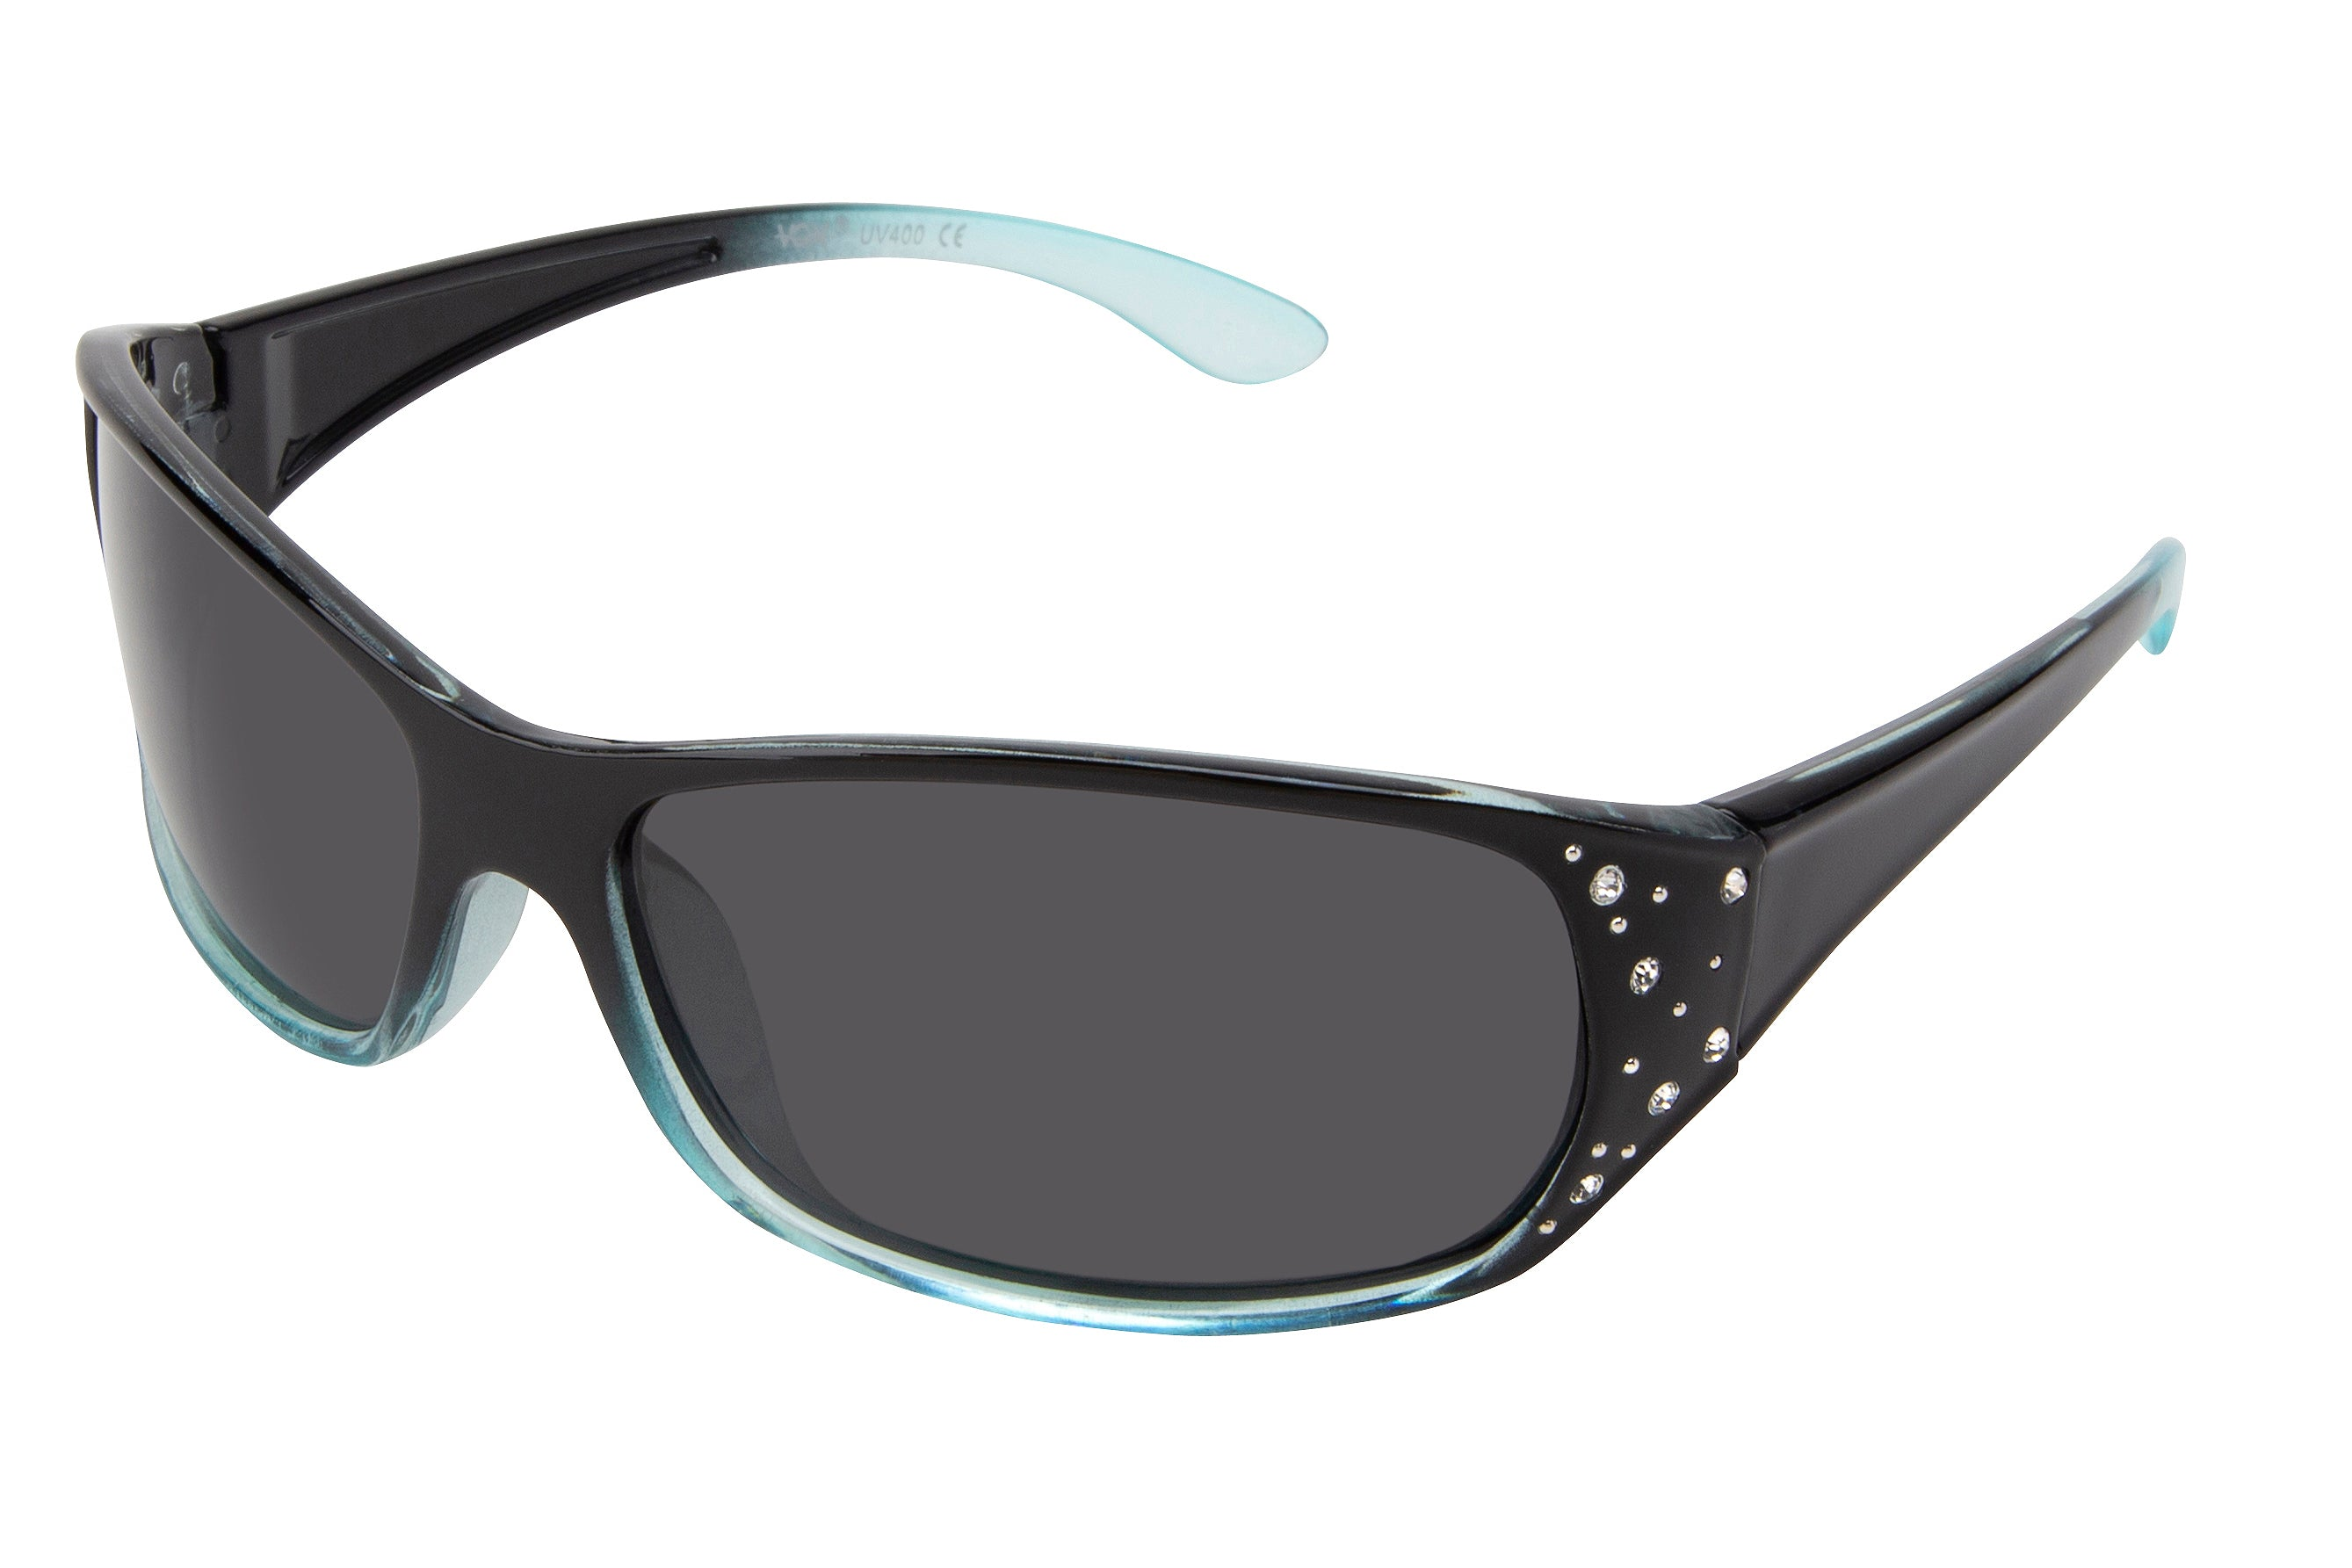 62049-POL - Vox Women's Polarized PC Fashion Sunglasses w/ Rhinestones